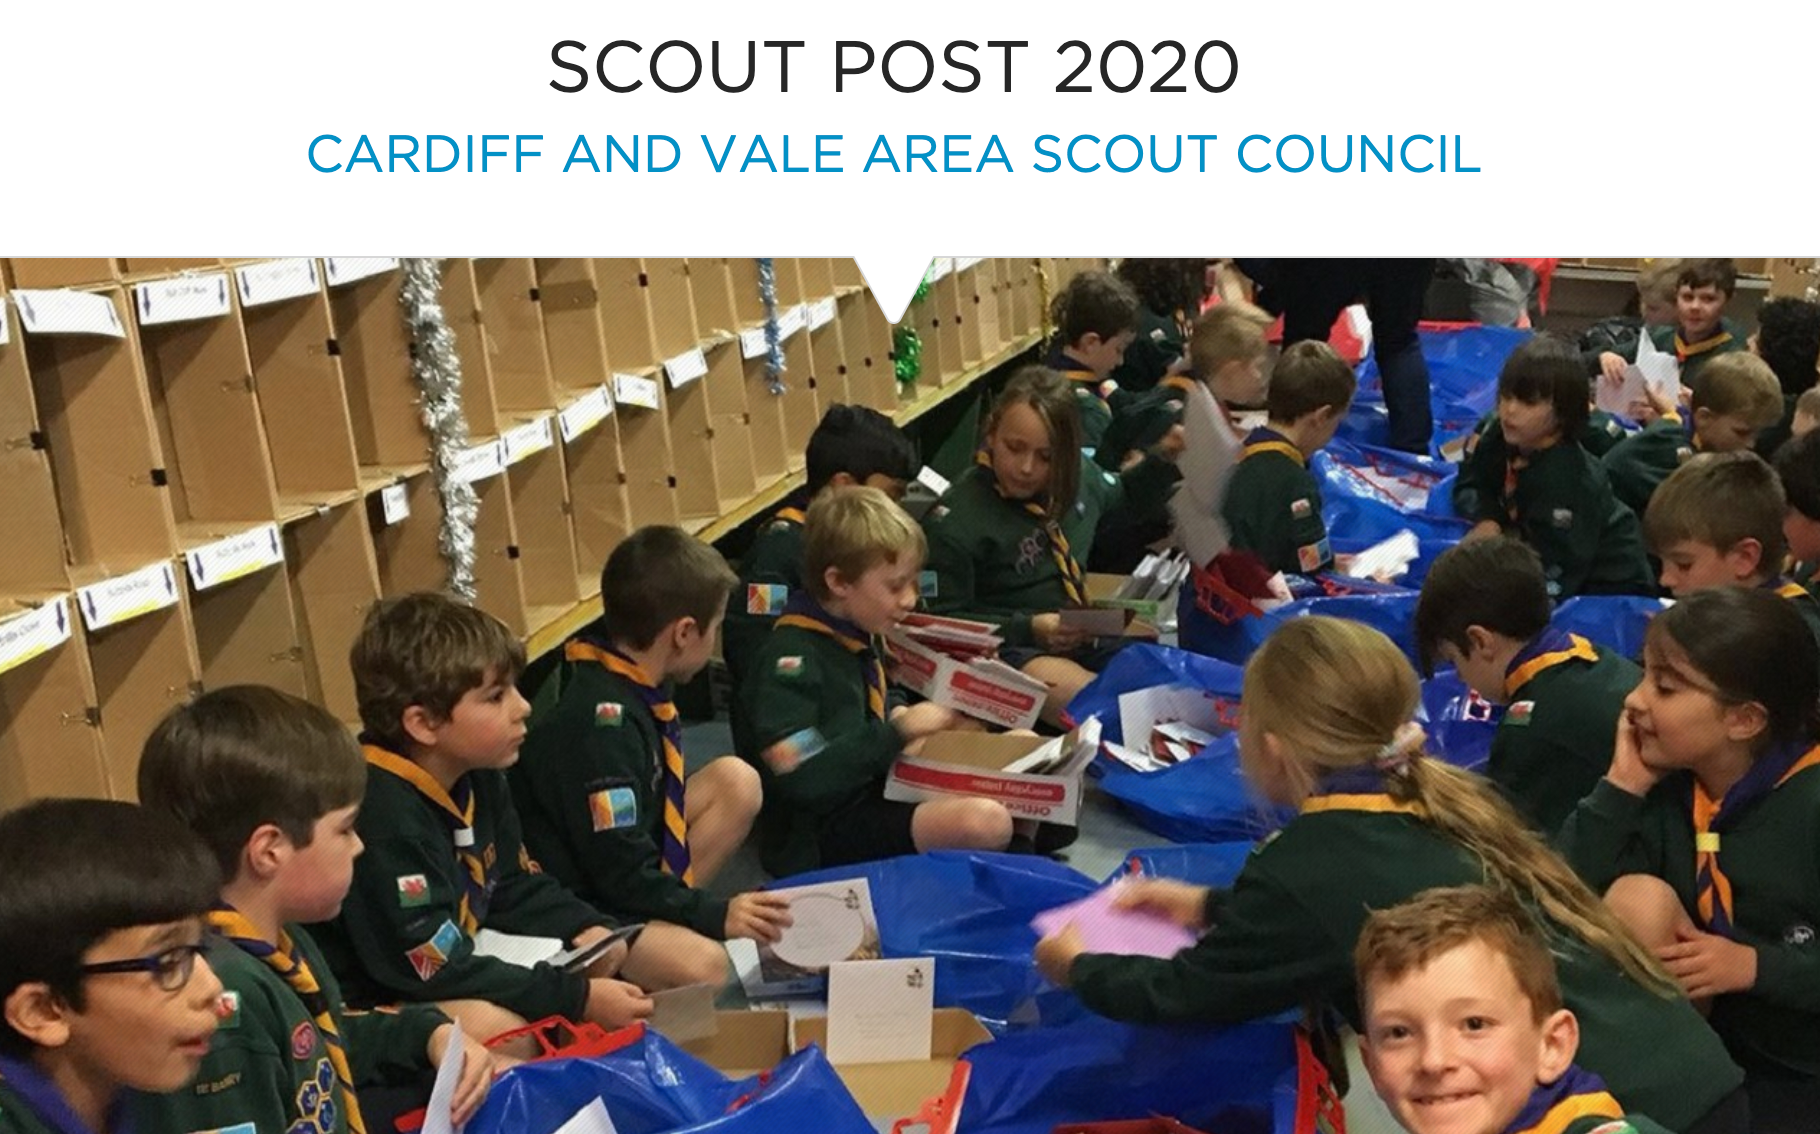 Scout Post 2020 Cancelled